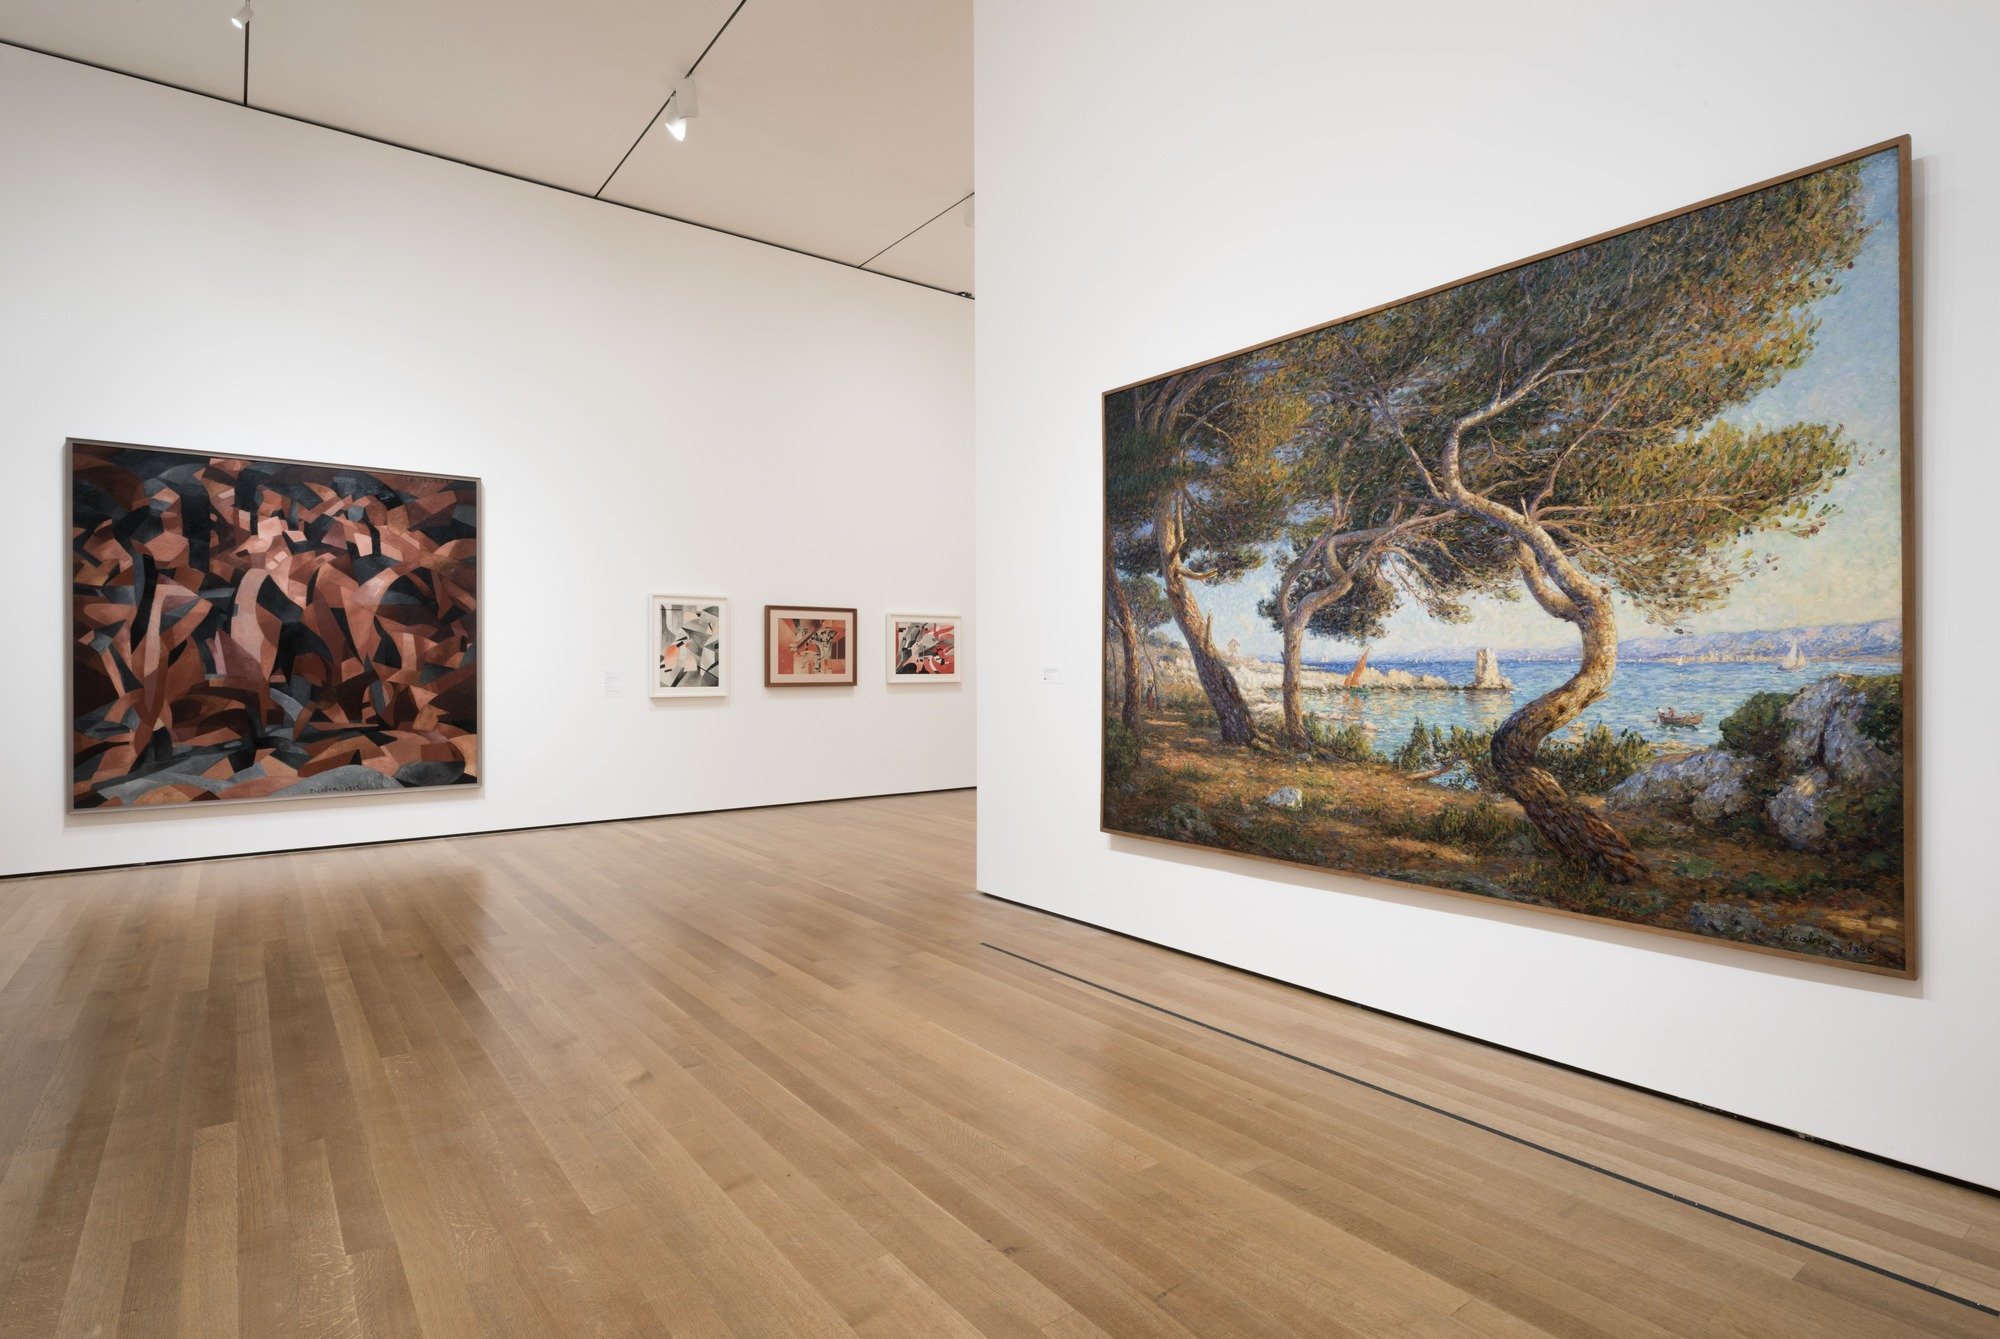 Installation view of Francis Picabia: Our Heads Are Round so Our Thoughts Can Change Direction. The Museum of Modern Art, New York.